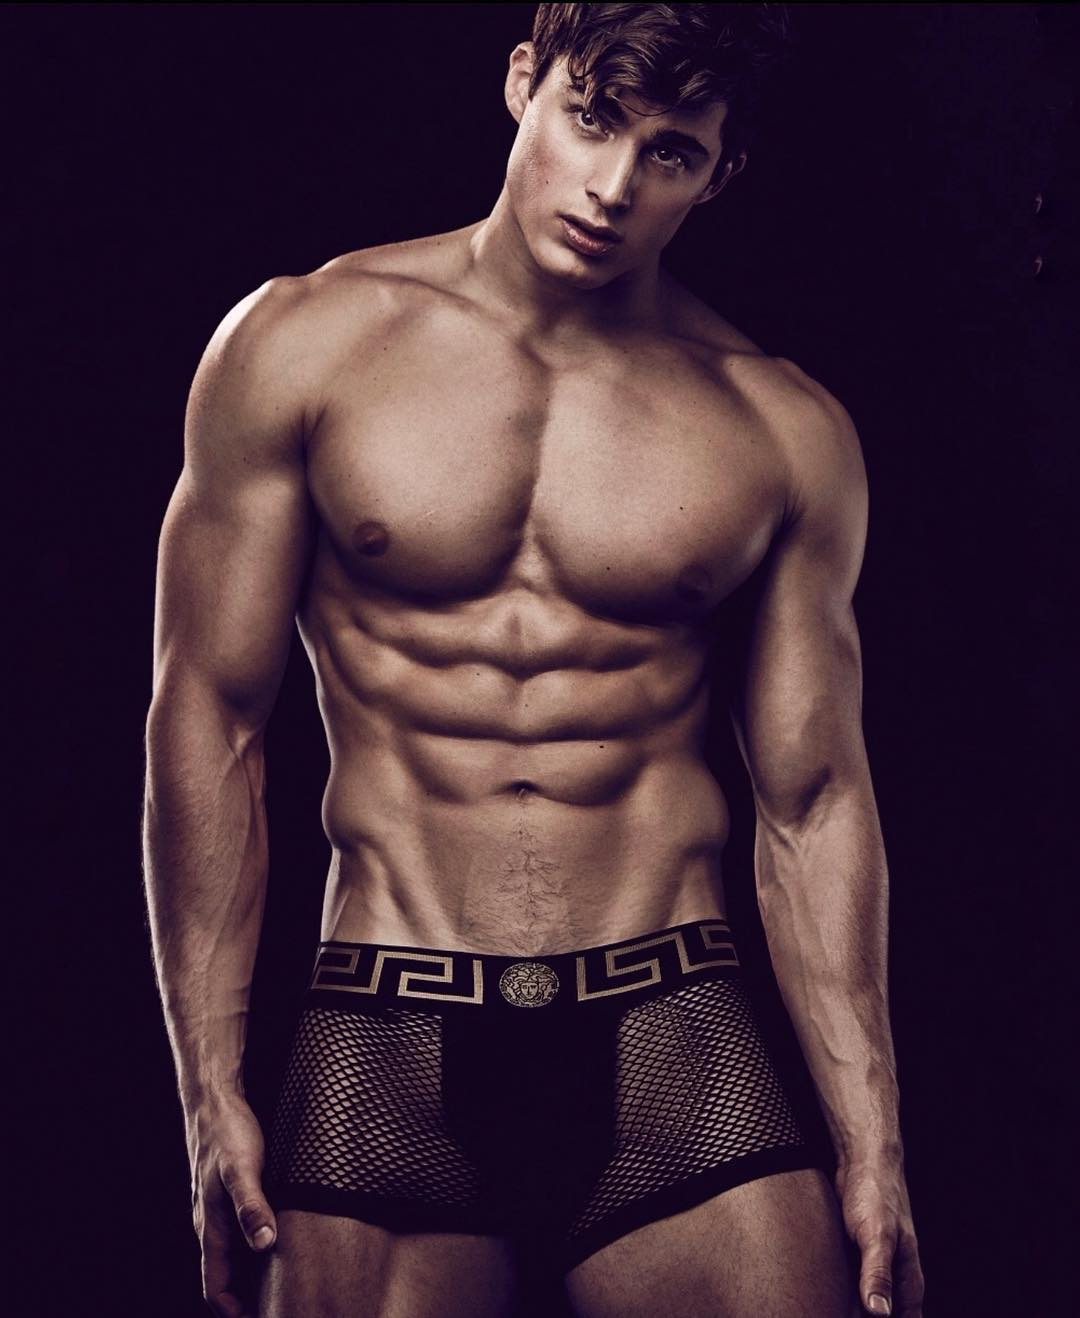 @danieljaems time to shoot I think